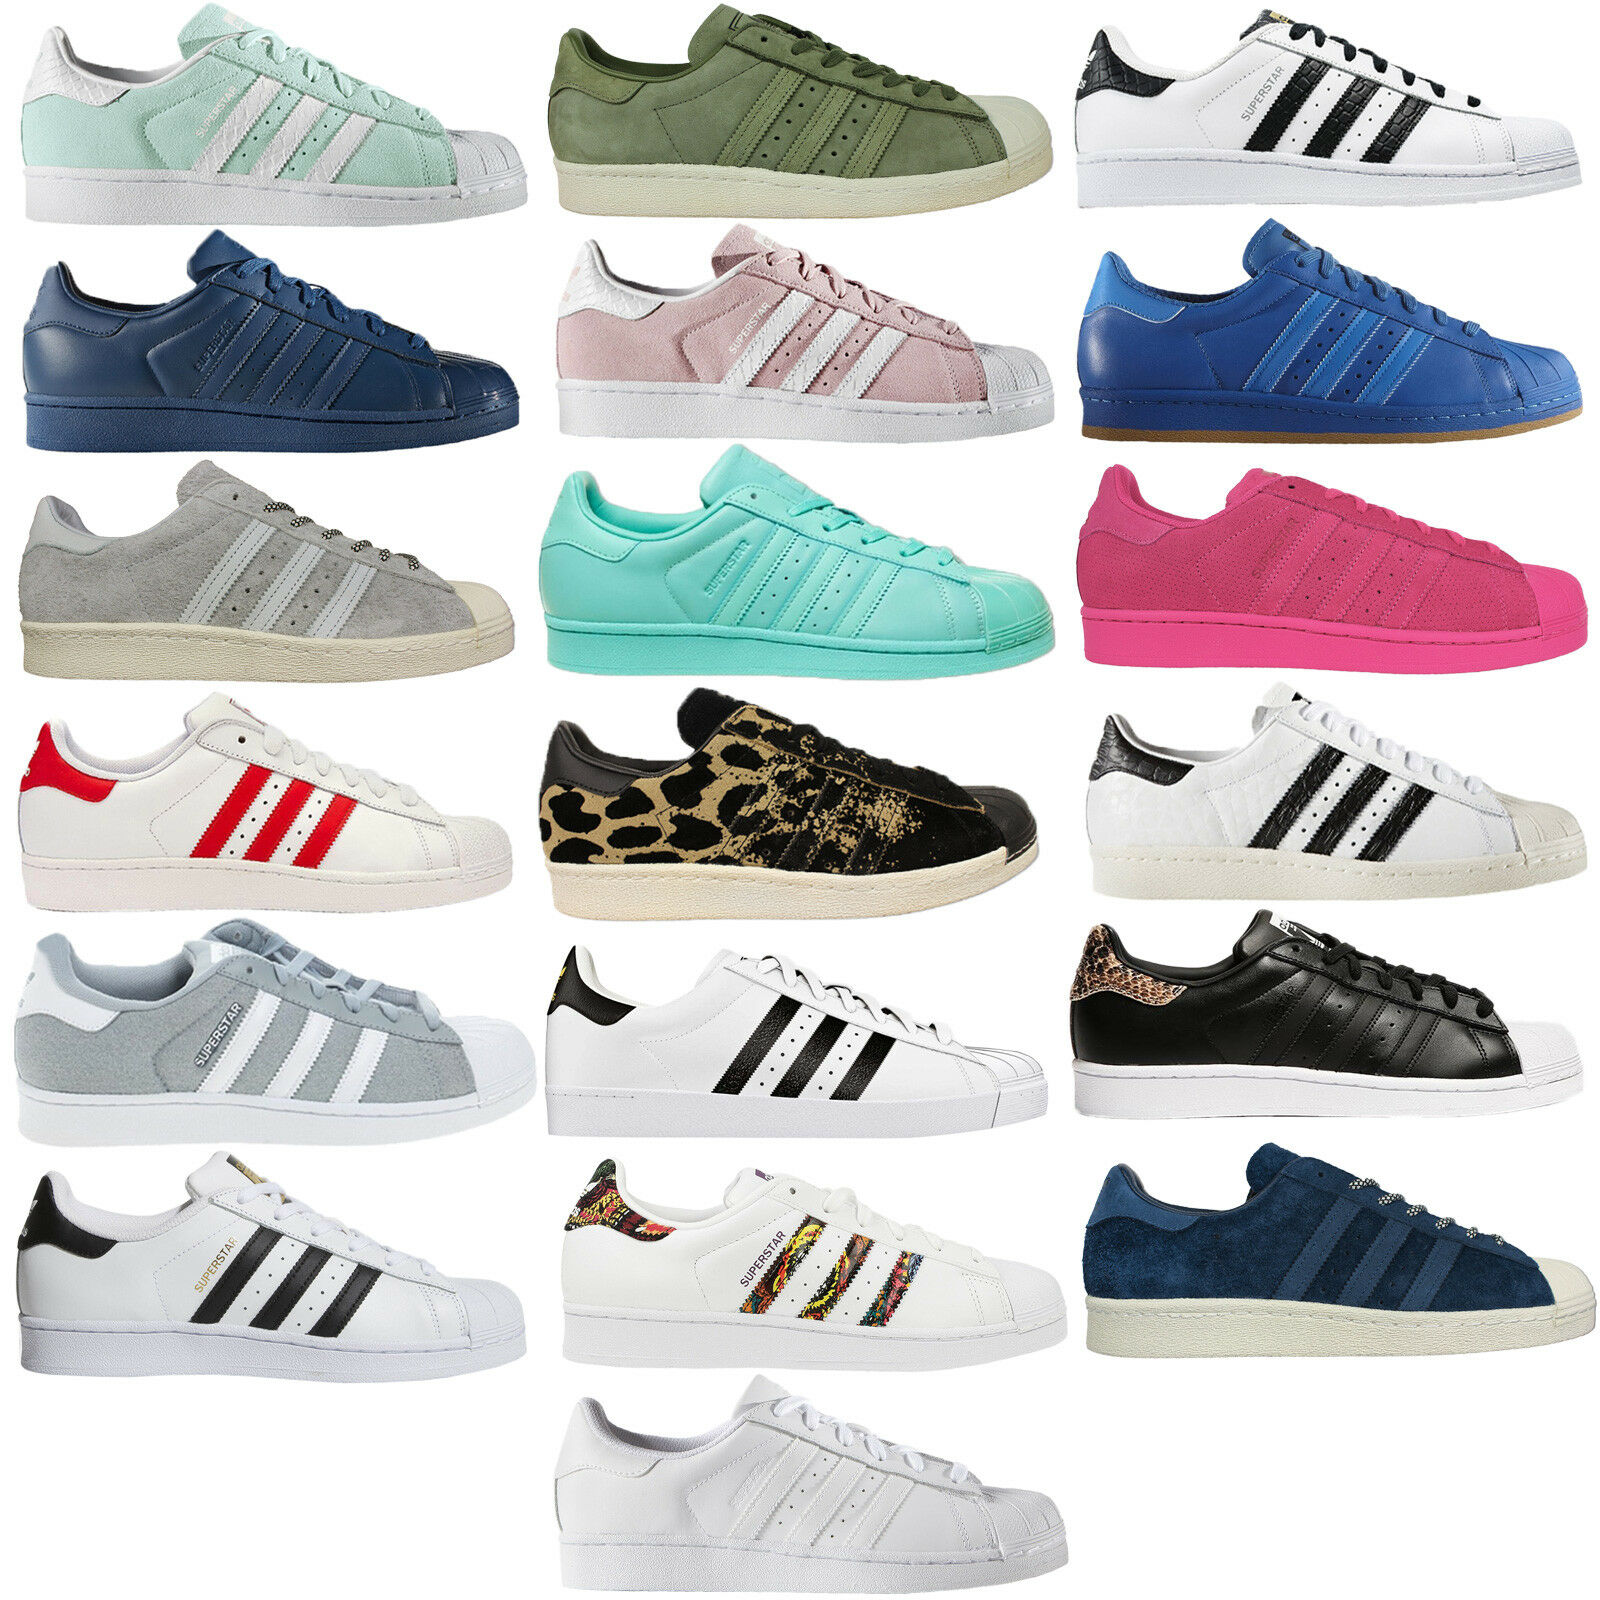 Adidas Originals Superstar Sst Unisex Leather Trainers shoes